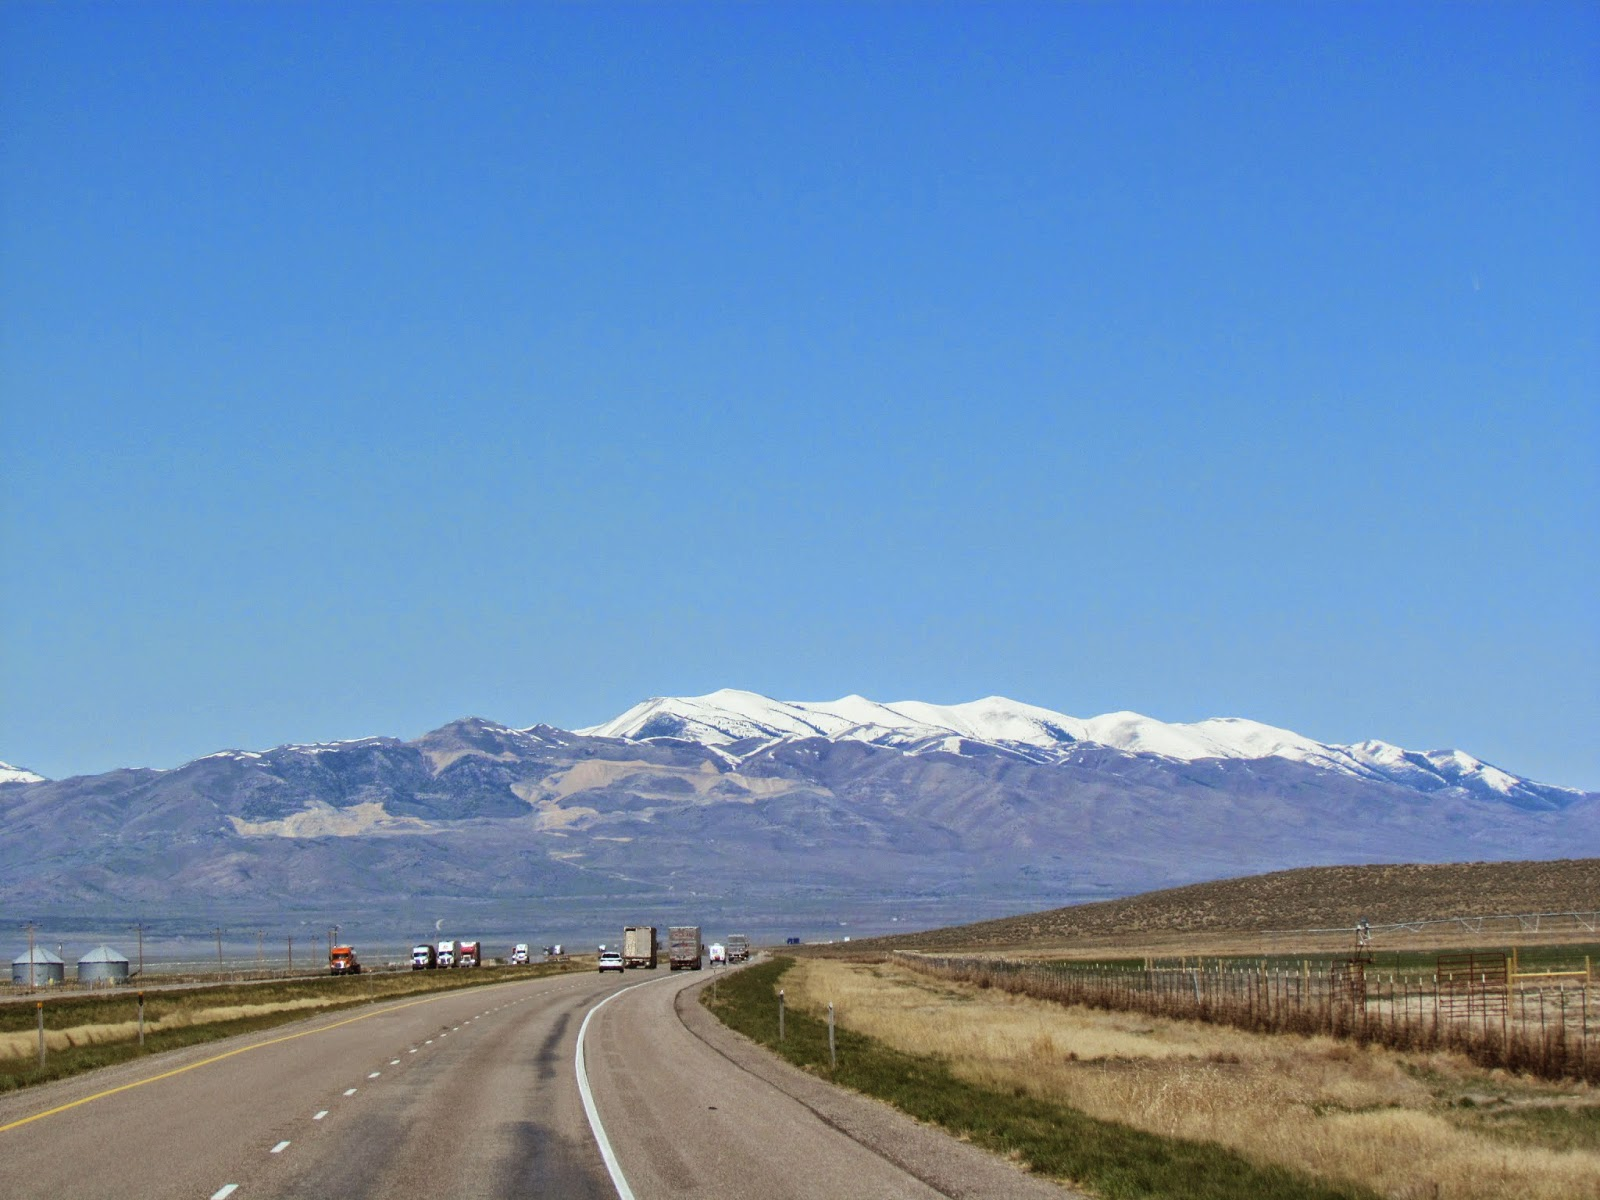 Hardts On The Highway: Snowville, Utah, to Meridian, Idaho